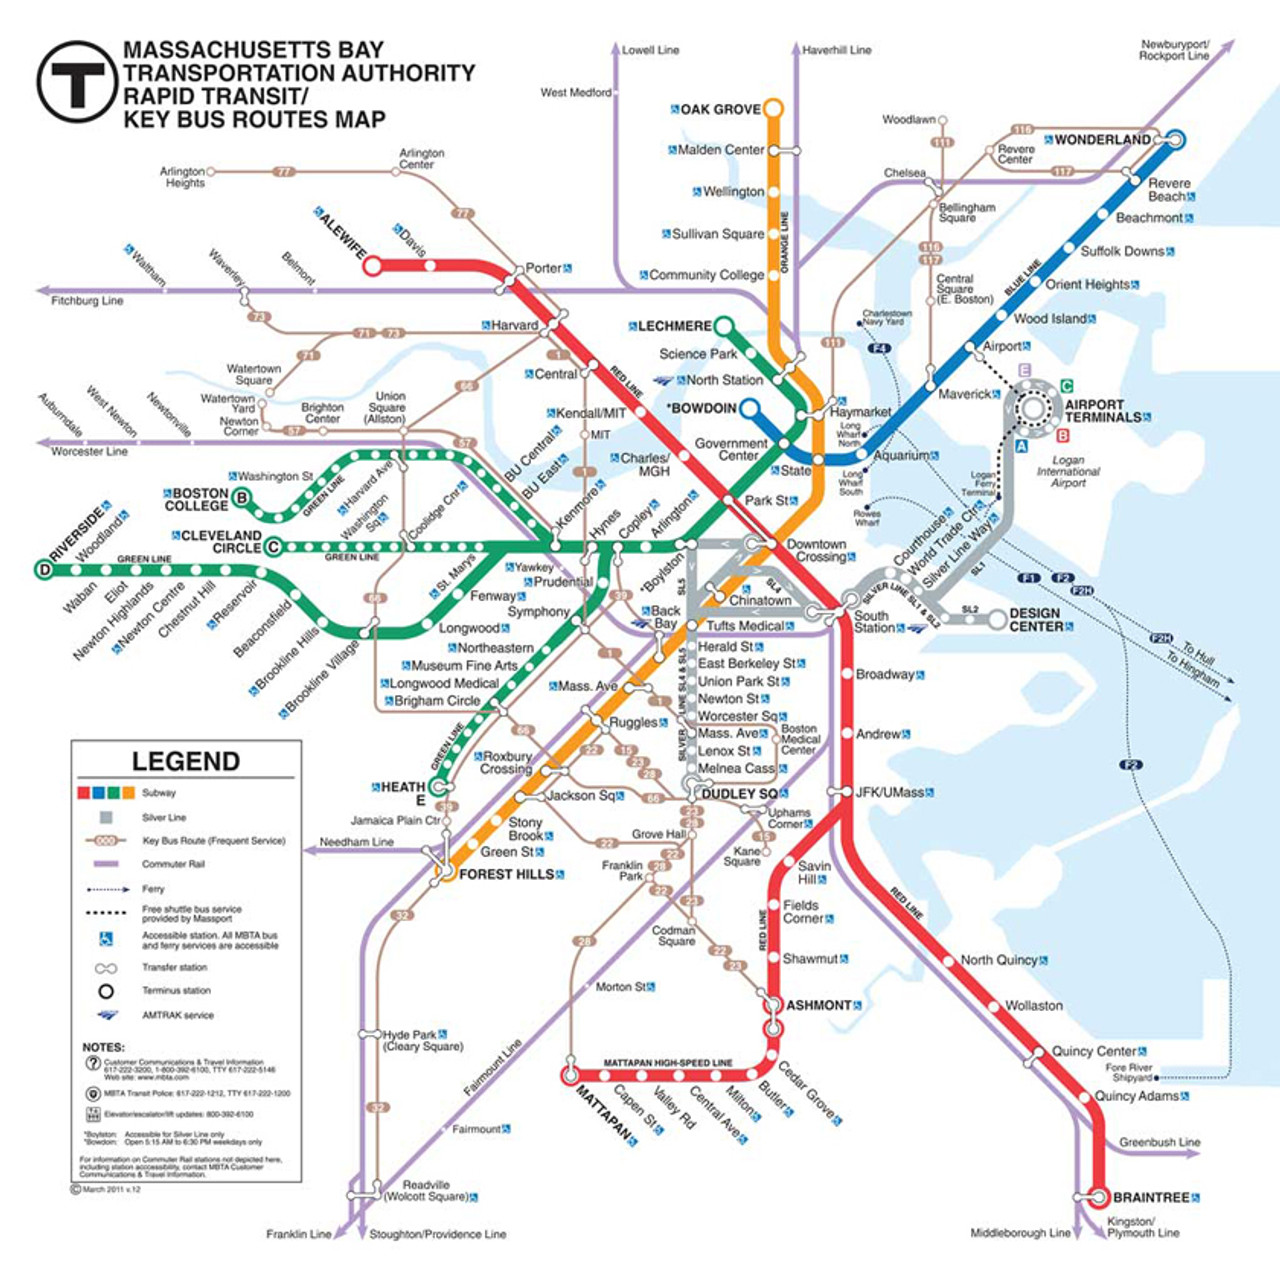 New York Subway Map Puzzle.Boston Subway Puzzle 500pc Jigsaw Puzzle By New York Puzzle Co